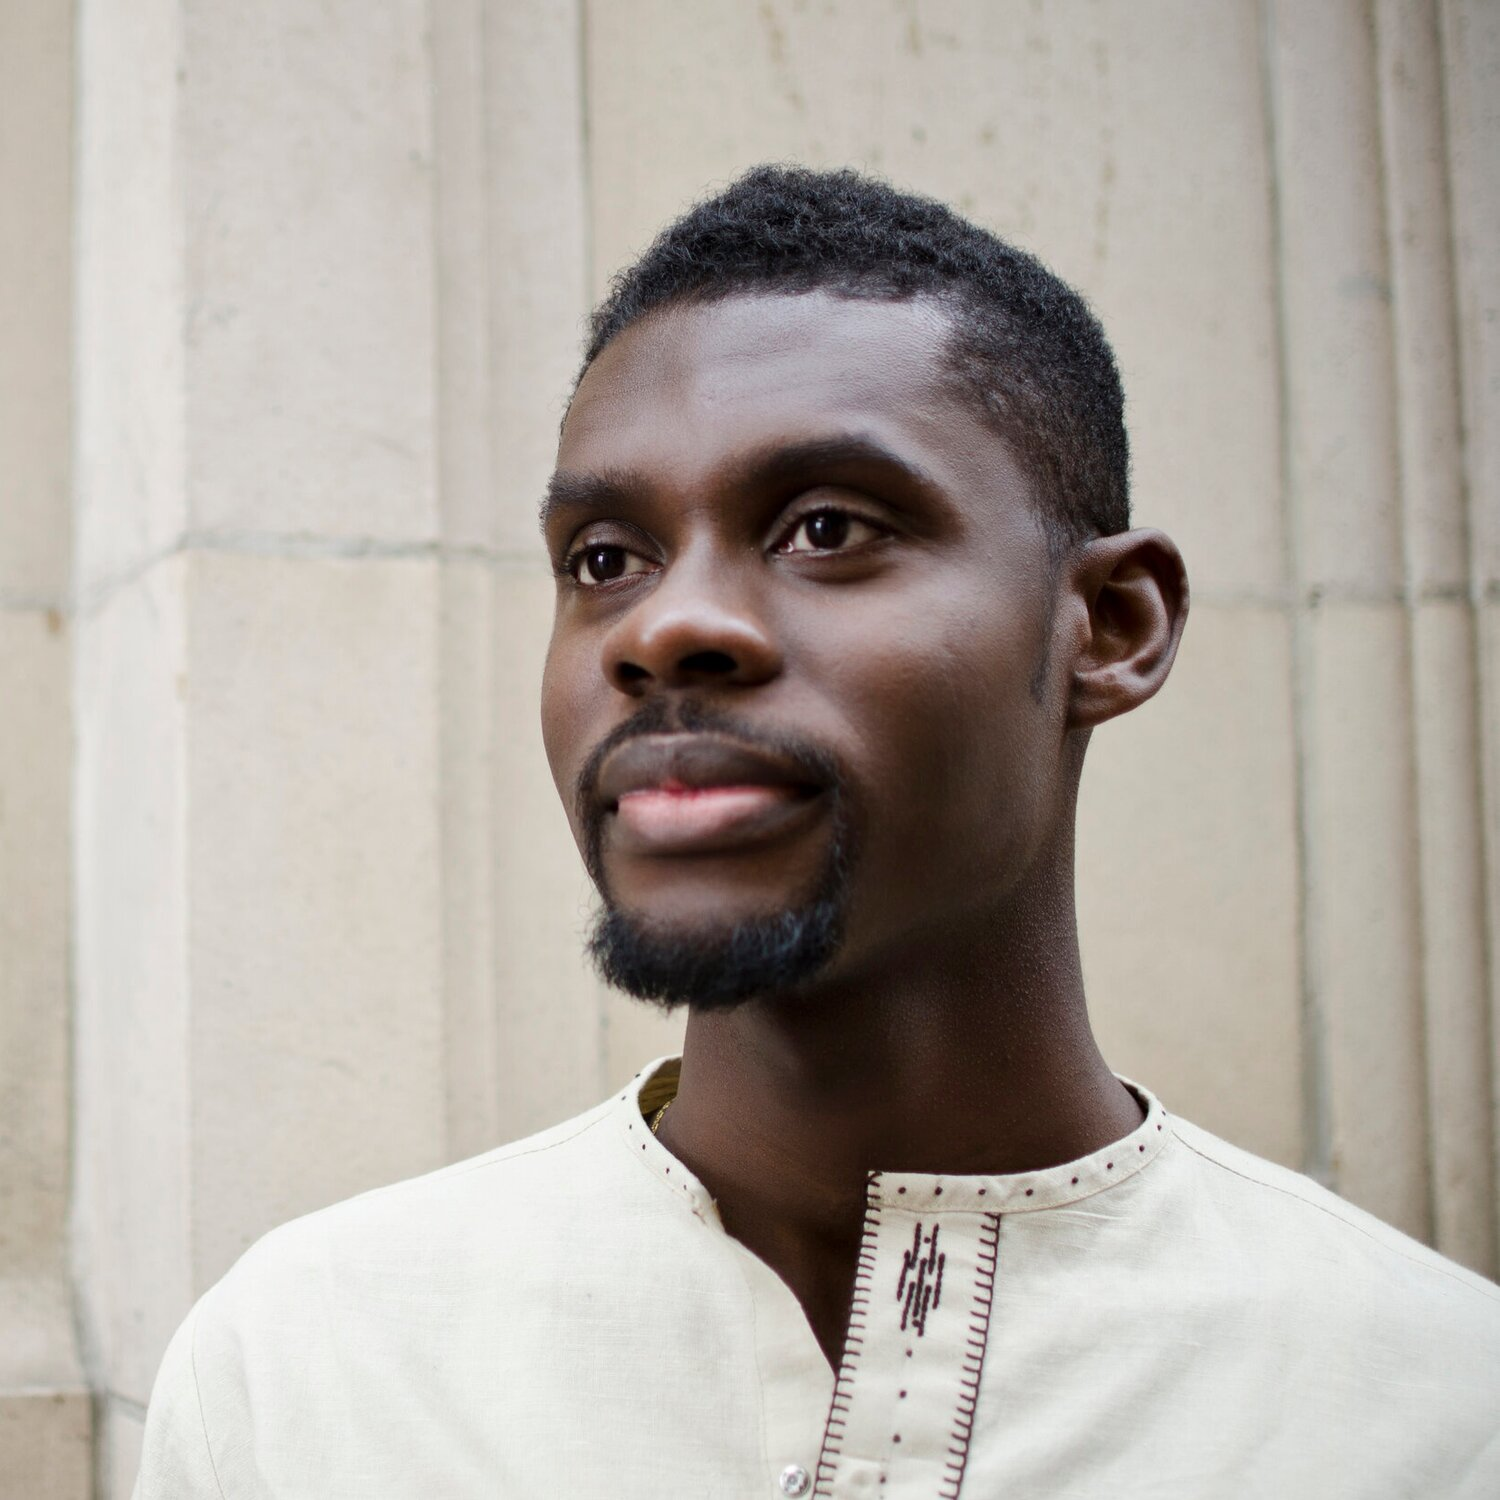 """Praised for his """"burnished tones and focused phrasing,"""" baritone  Jean Bernard Cerin  has charmed audiences throughout the United States, France, Austria, and his native Haiti. A gifted recitalist, Jean Bernard won the Gerard Souzay Prize for best performance of a French Melodie in the 2018 Joy in Singing International Song Competition. With his Duo 1717 partner, pianist Veena Kulkarni-Rankin, he gives recitals throughout the country redefining the limits of a traditional song recital. On the concert stage, this season's highlights included debuts with American Bach Soloists in San Francisco, Philadelphia Chamber Society's Gamut Bach Ensemble, Piffaro Renaissance Wind Ensemble and Louisville's Bourbon Baroque alongside returns to the Philadelphia Bach Festival and the Mendelssohn Club of Philadelphia."""